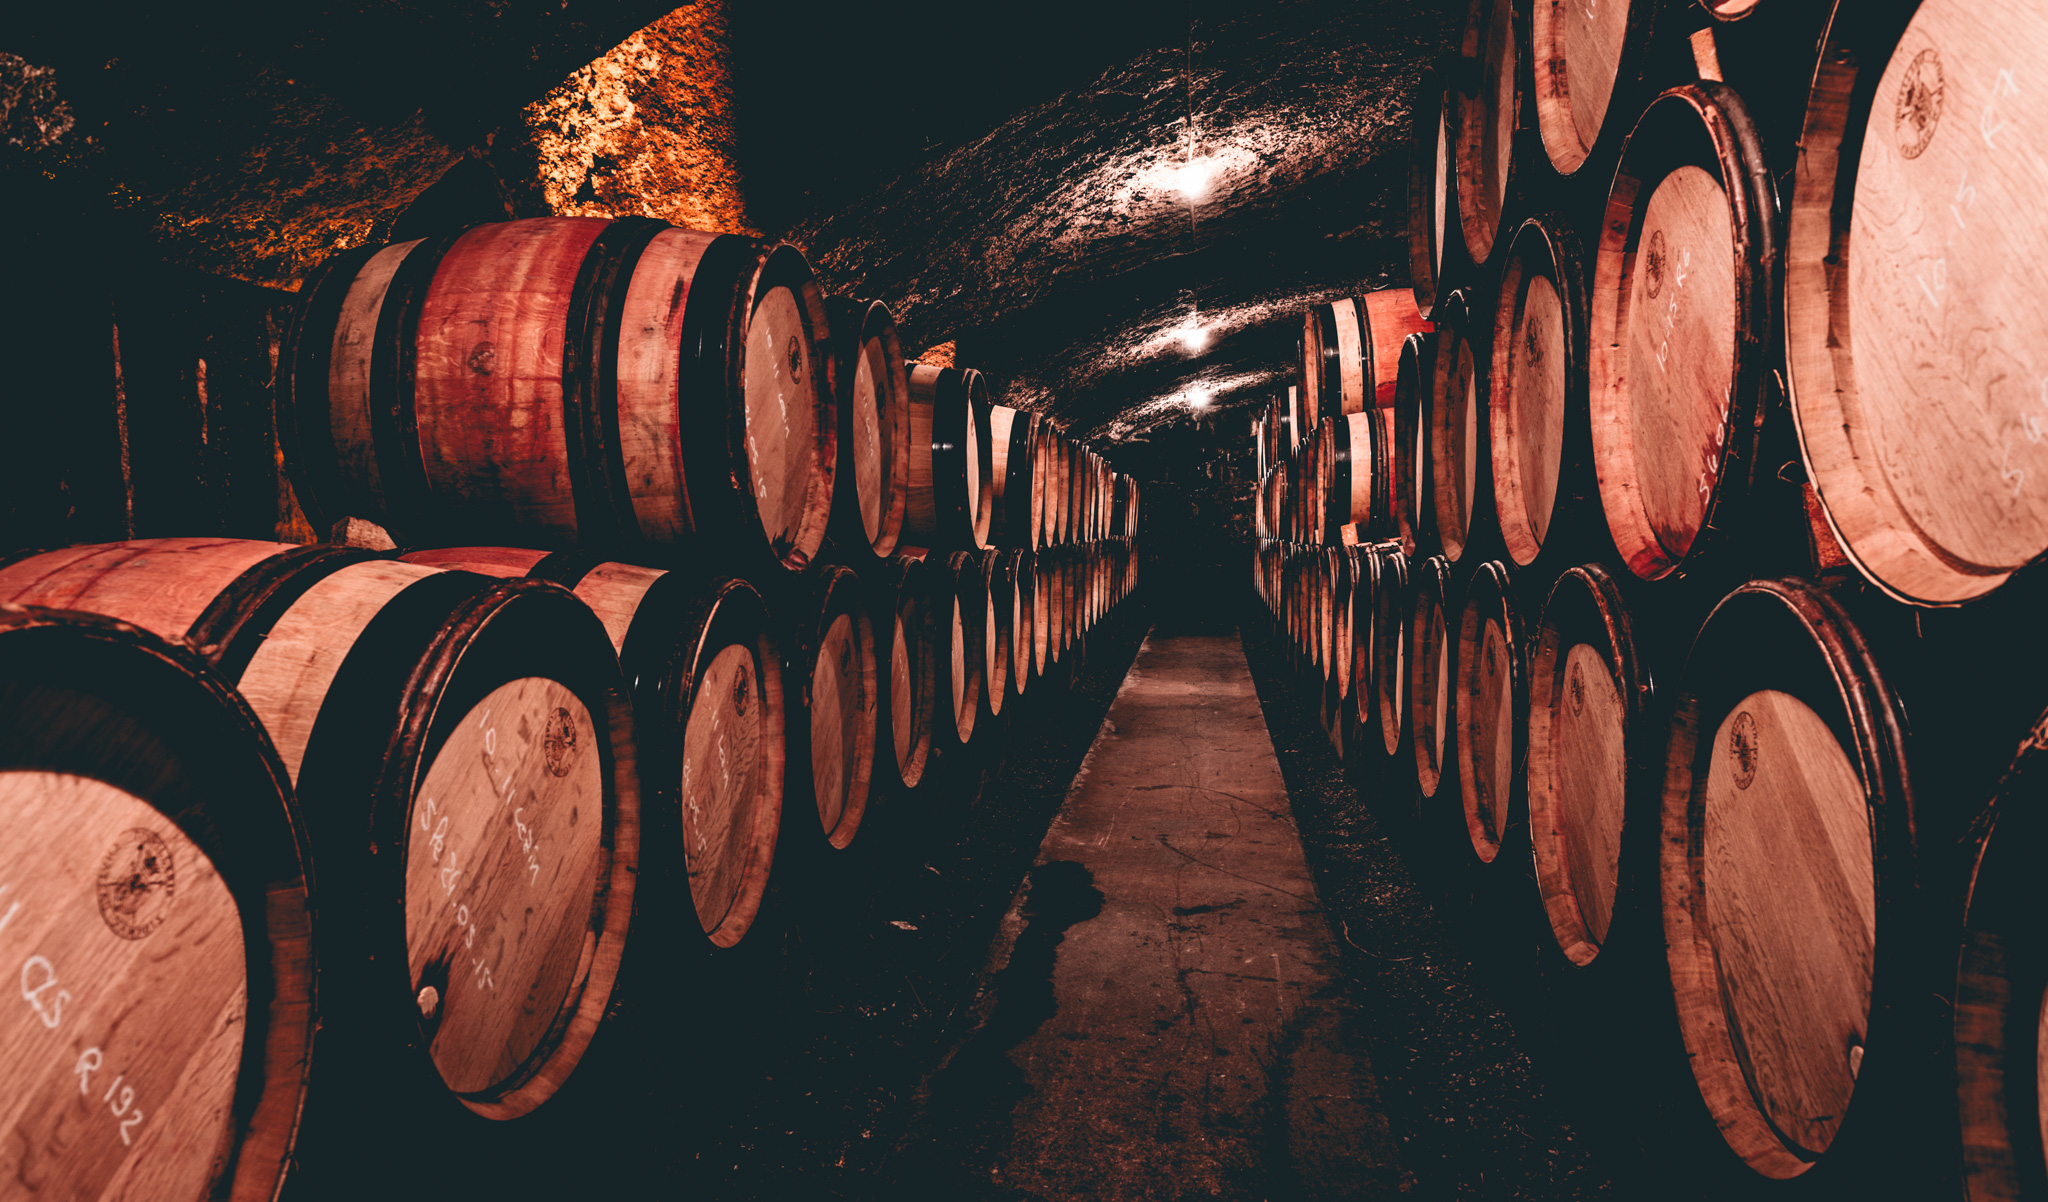 France : Northern Rhone : In the cellar at Guigal